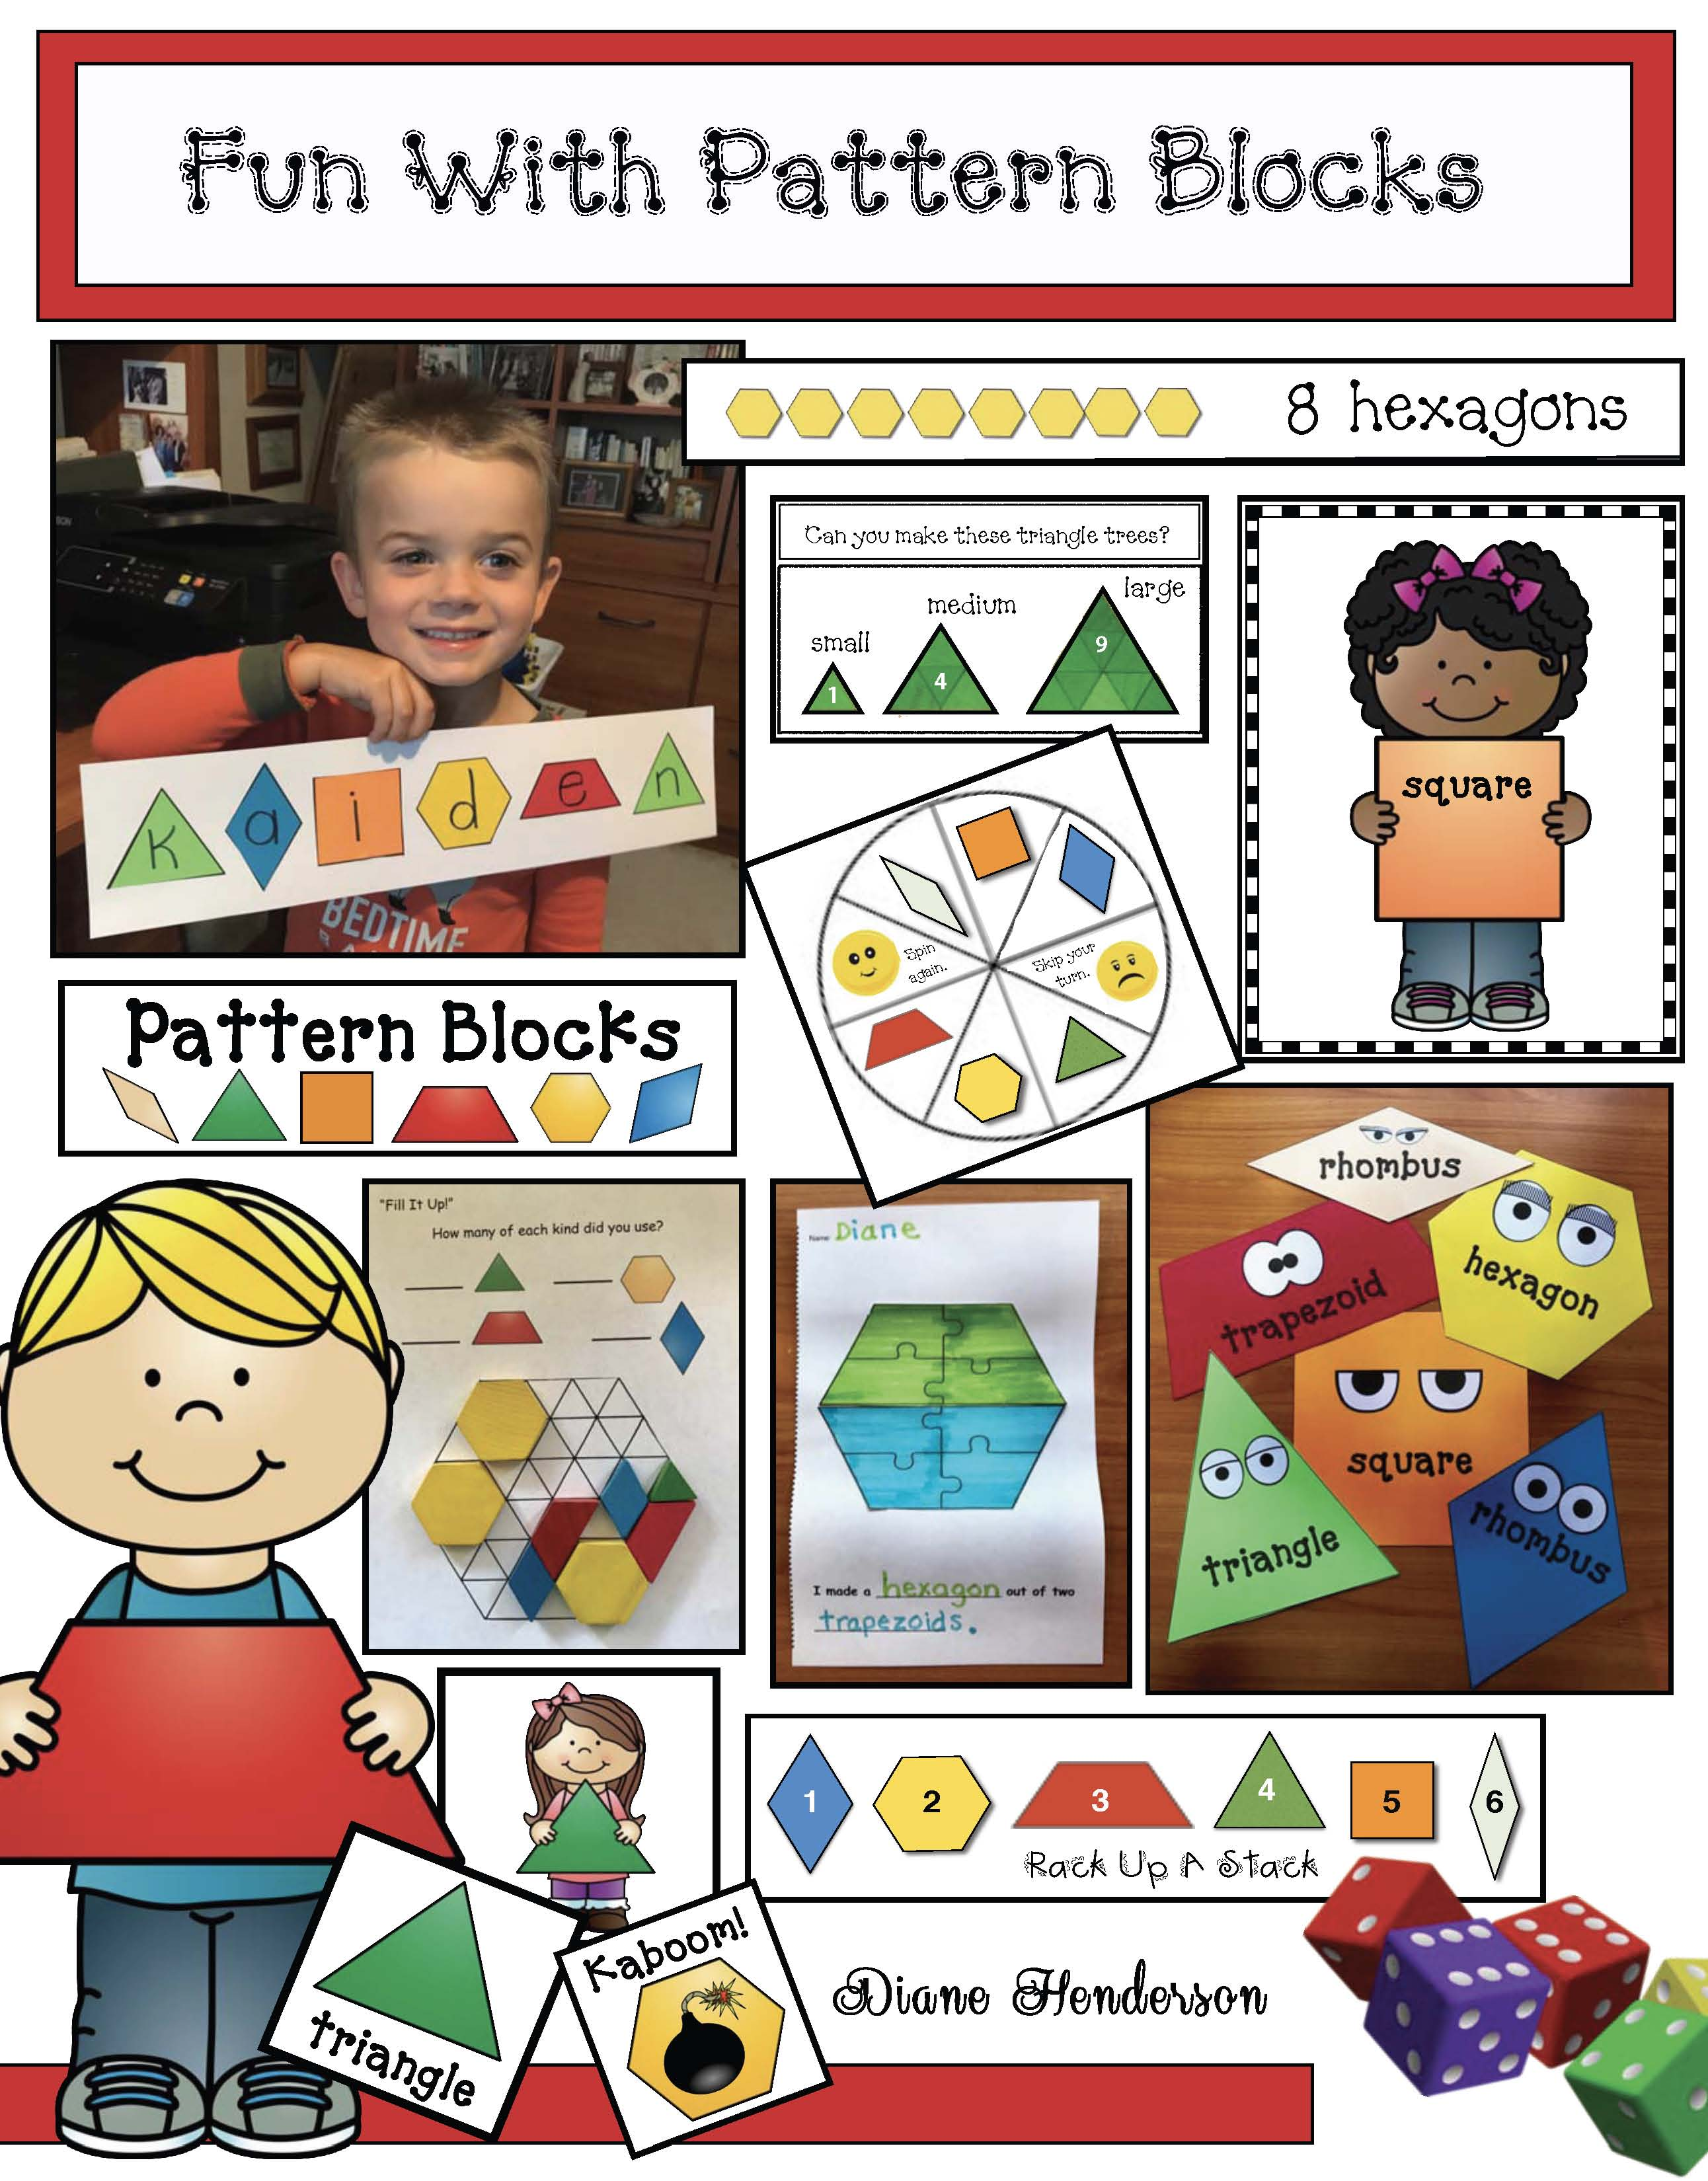 cover Fun With Pattern Blocks copy 3